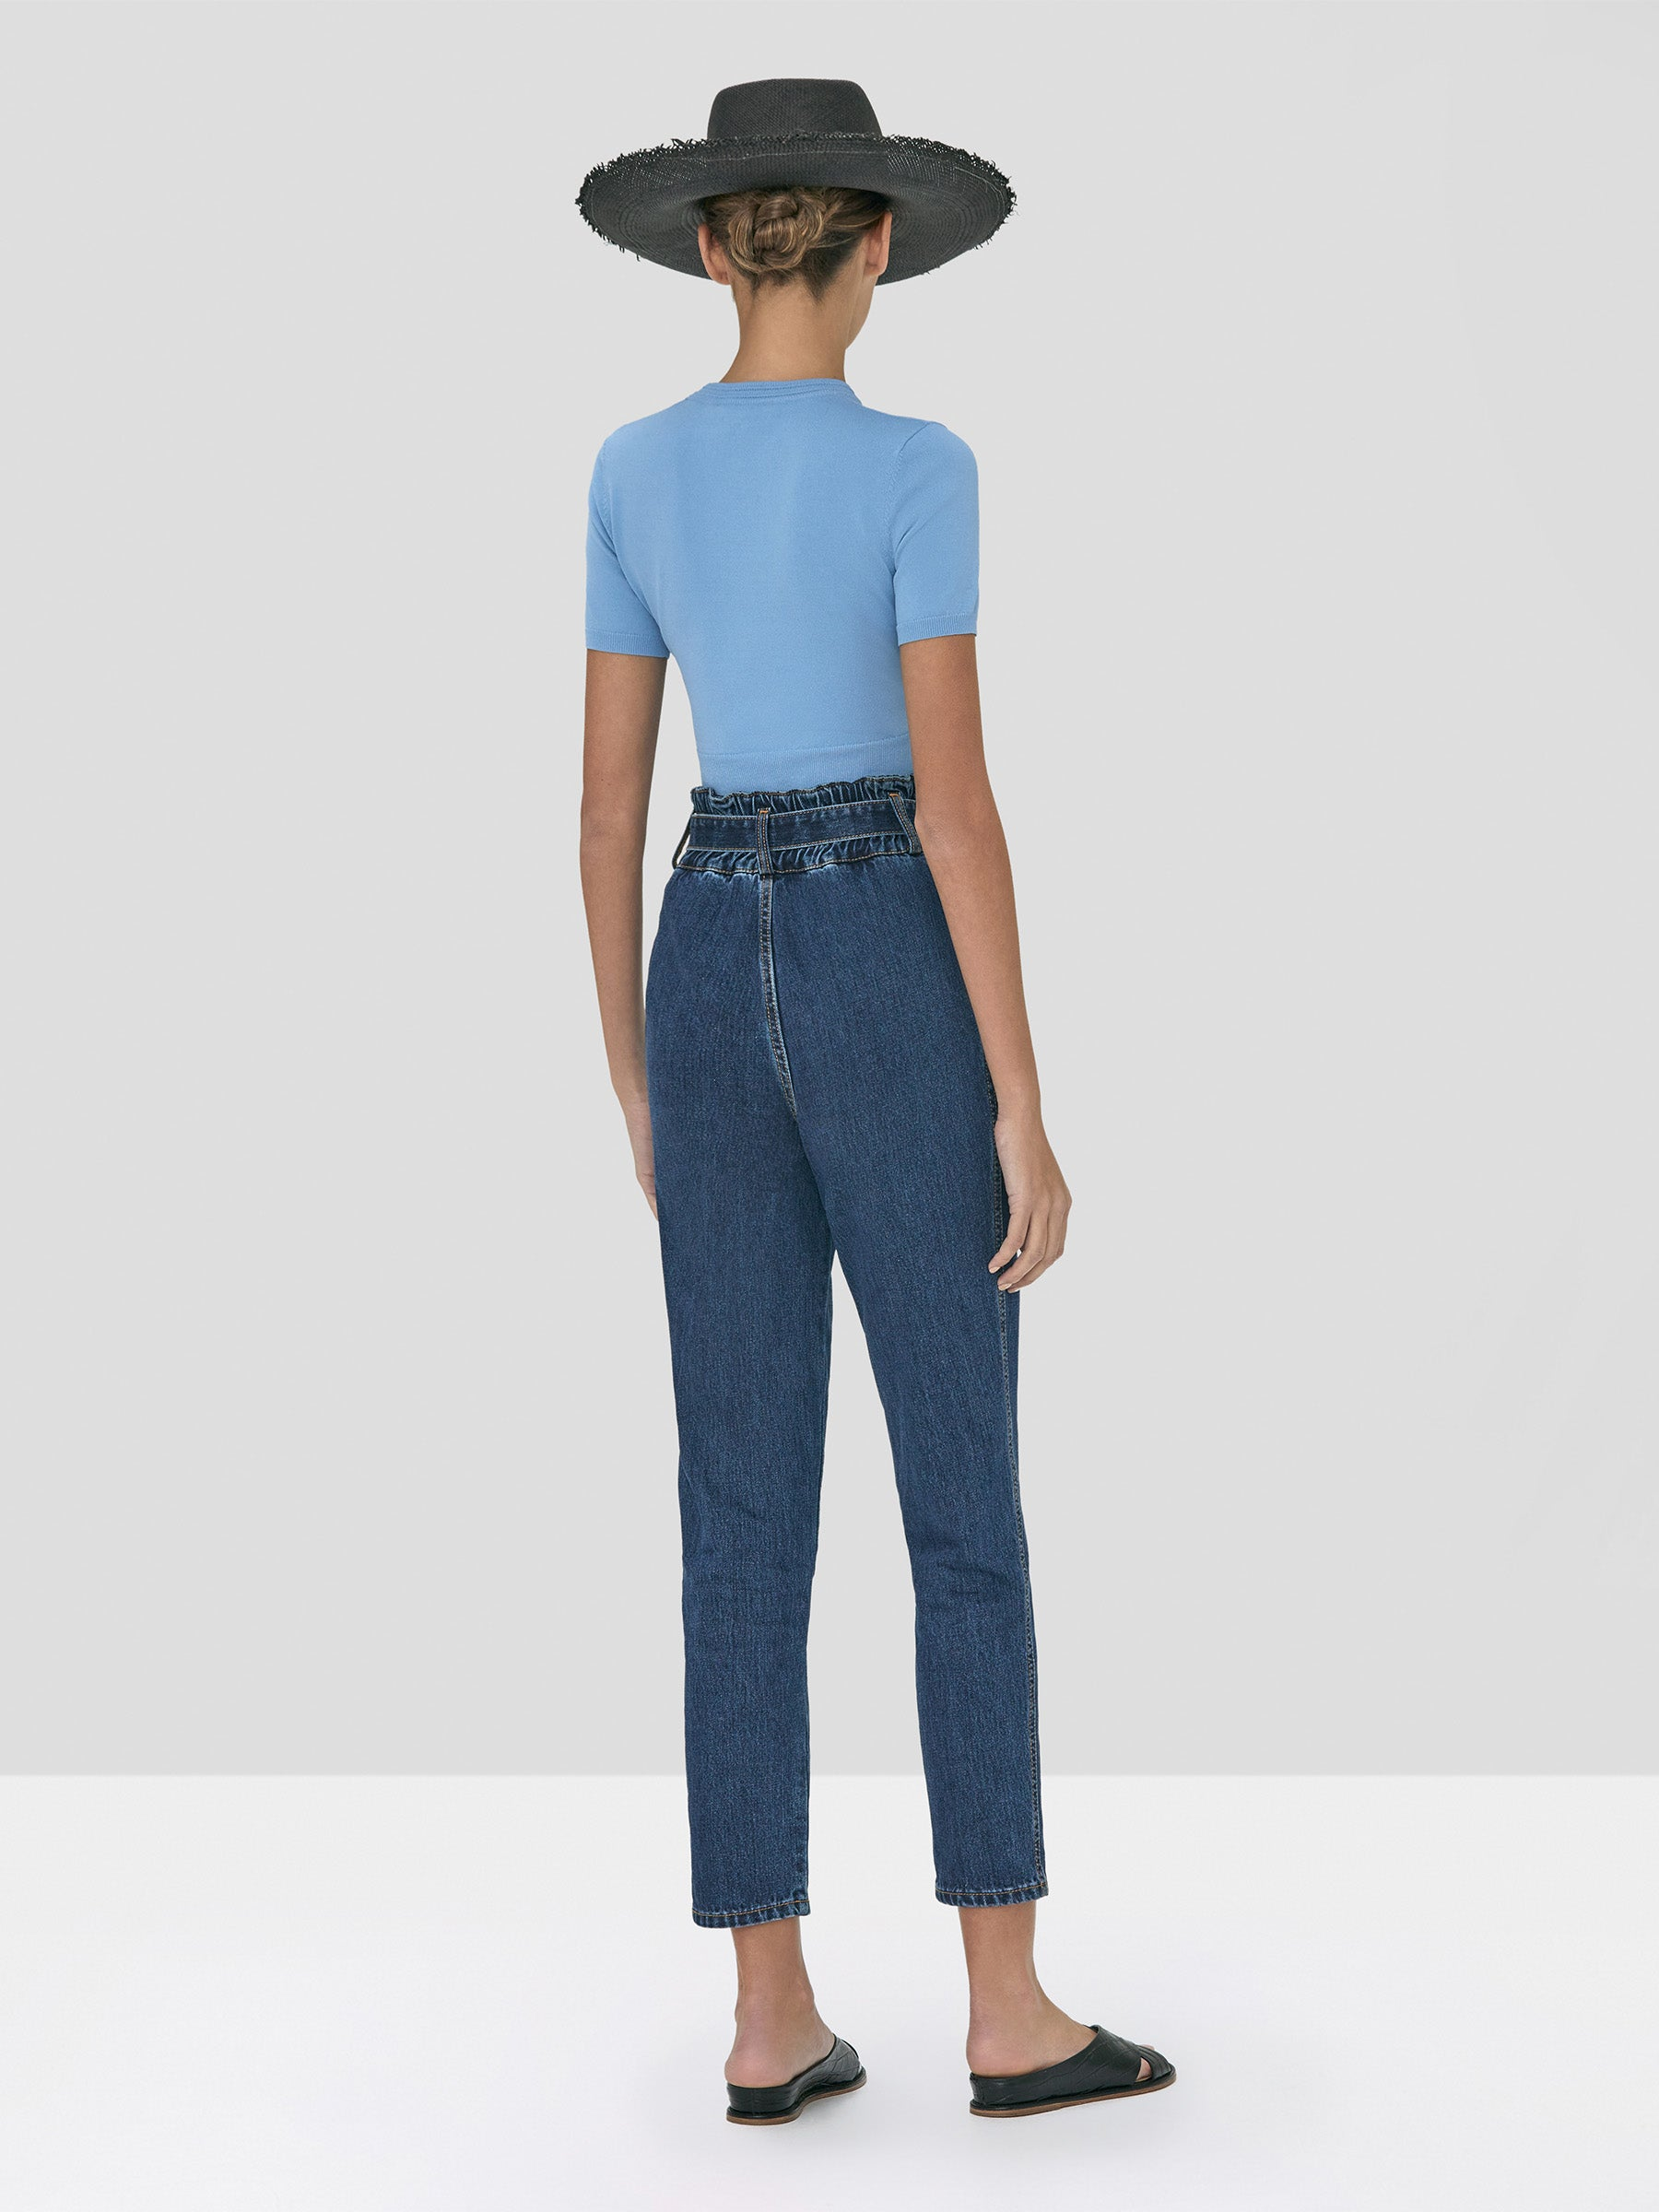 Alexis Finzi Crop Top inBlue and Stannis Denim Pant in Washed Denim from Spring Summer 2020 - Rear View